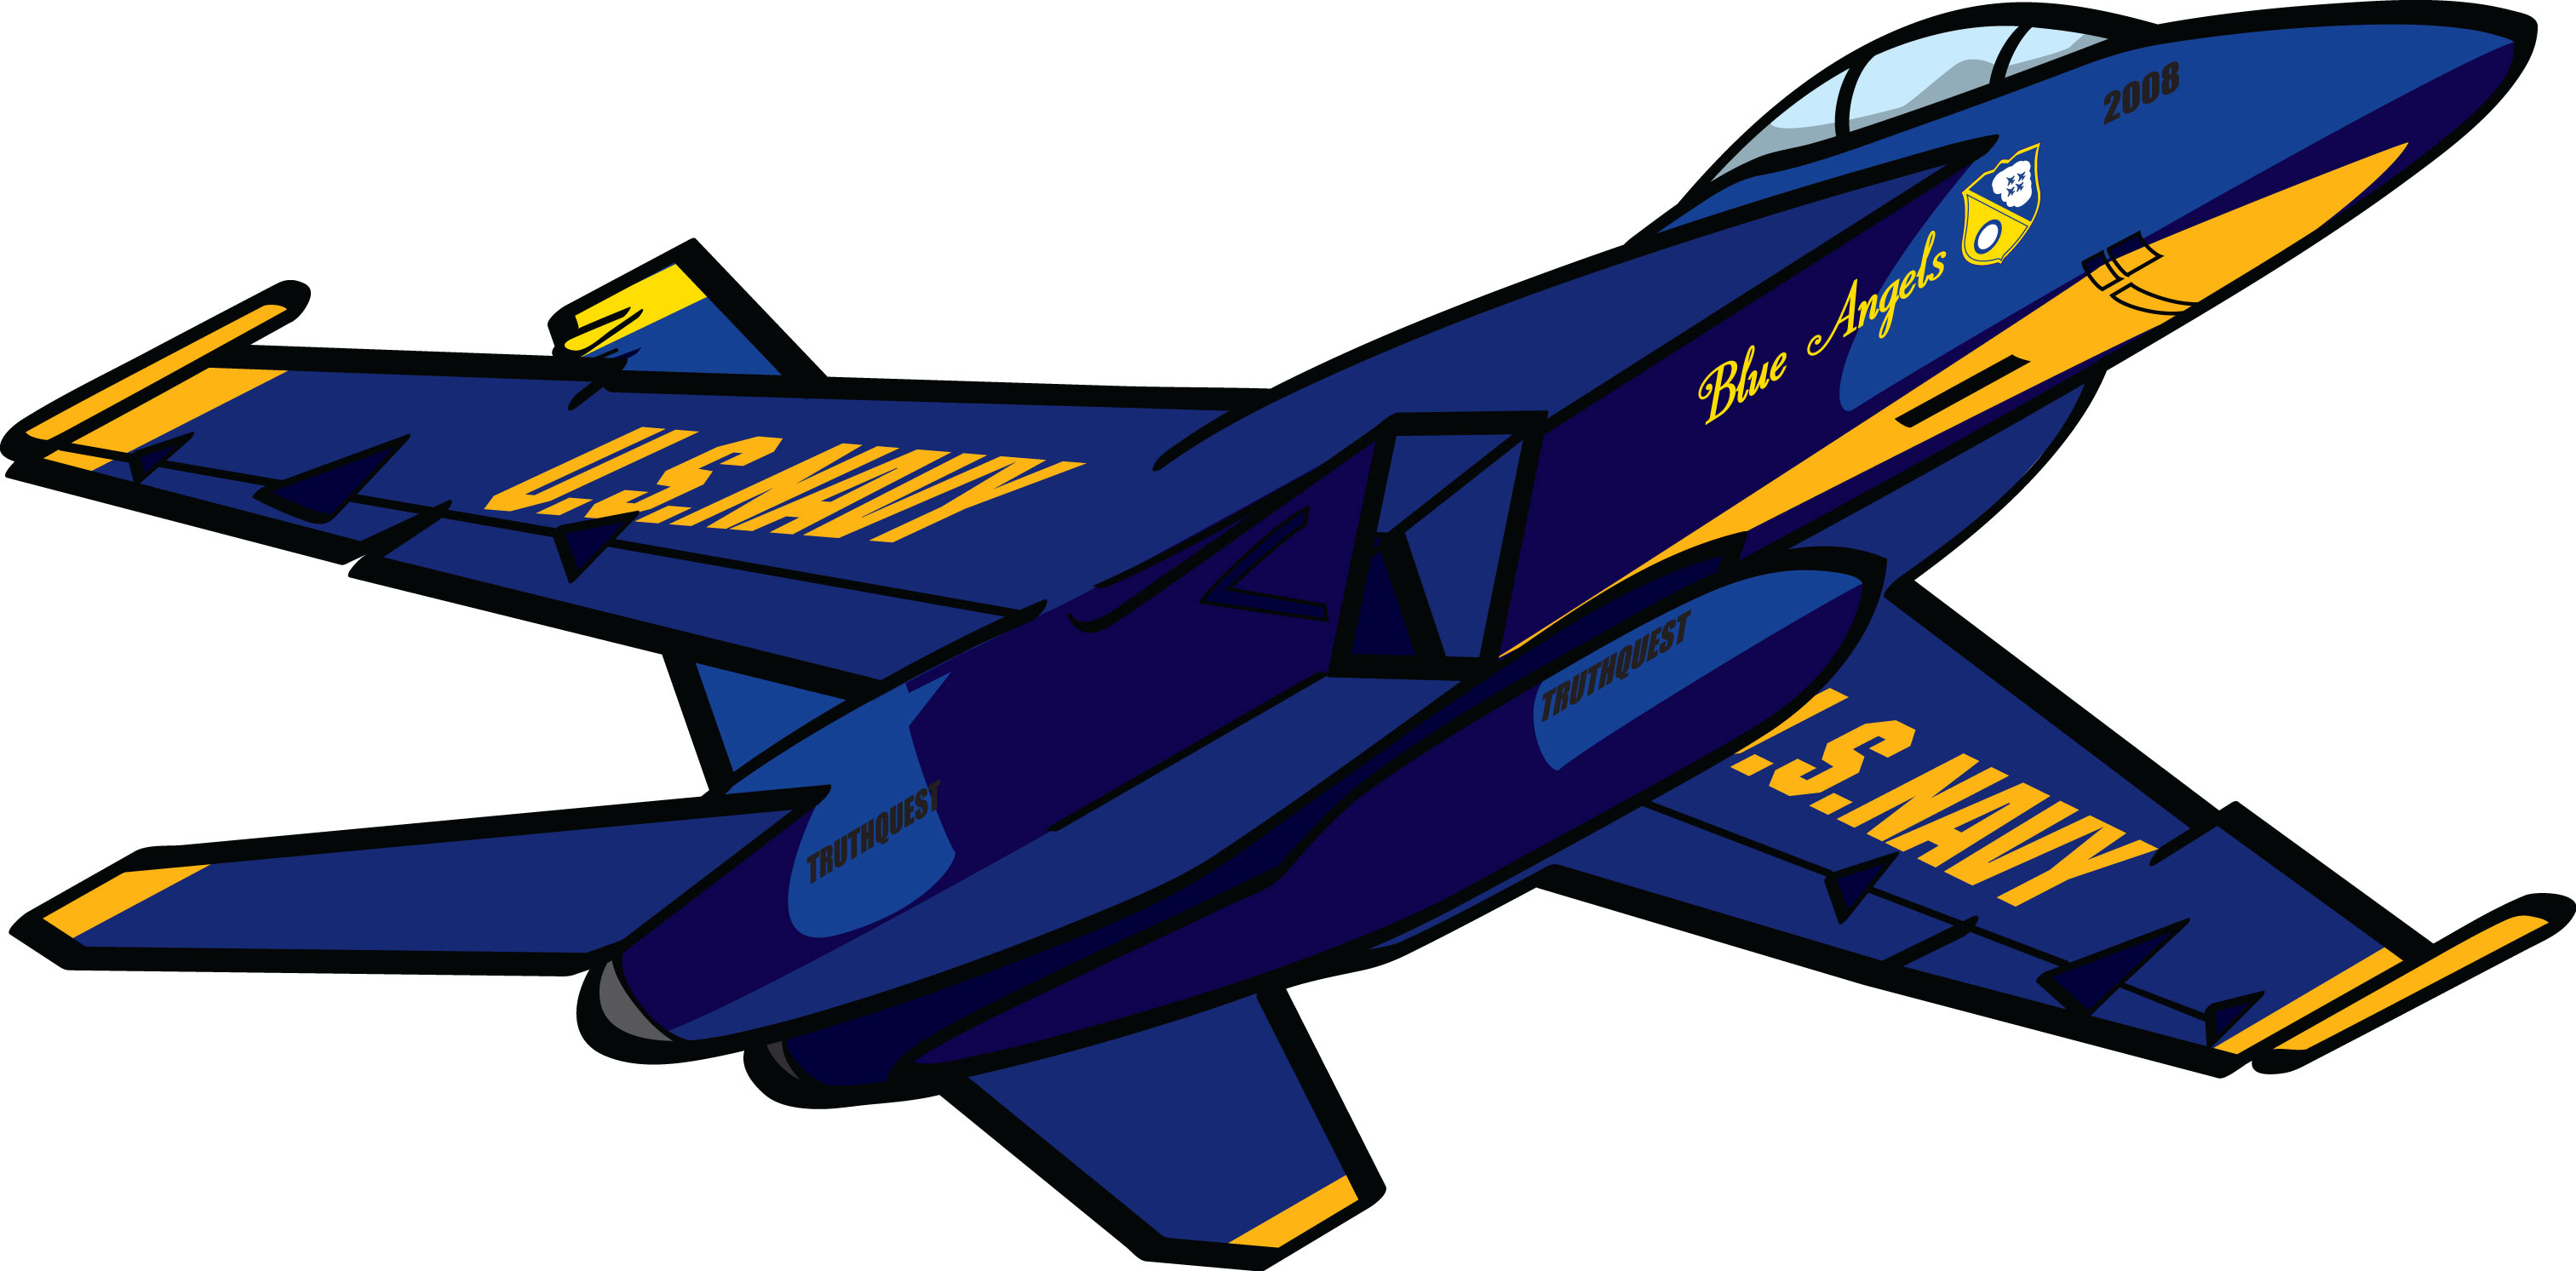 F 18 clipart banner royalty free download F-16 Fighter Jet Clipart - Clipartster banner royalty free download